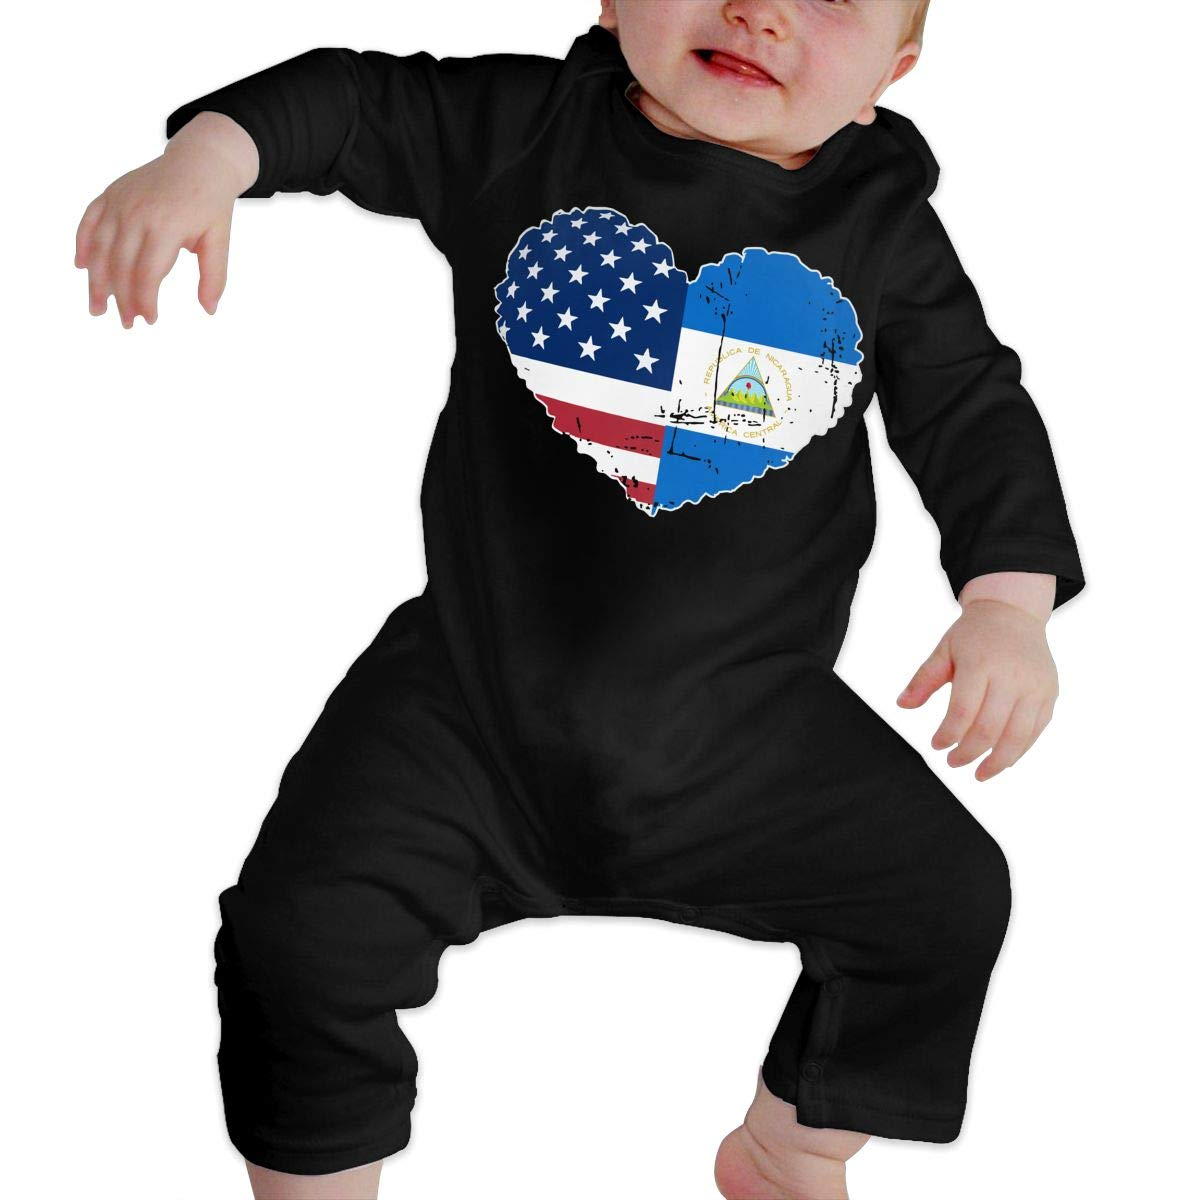 A1BY-5US Newborn Baby Boys Girls Cotton Long Sleeve Nicaragua USA Flag Heart Jumpsuit Romper Funny Printed Romper Clothes